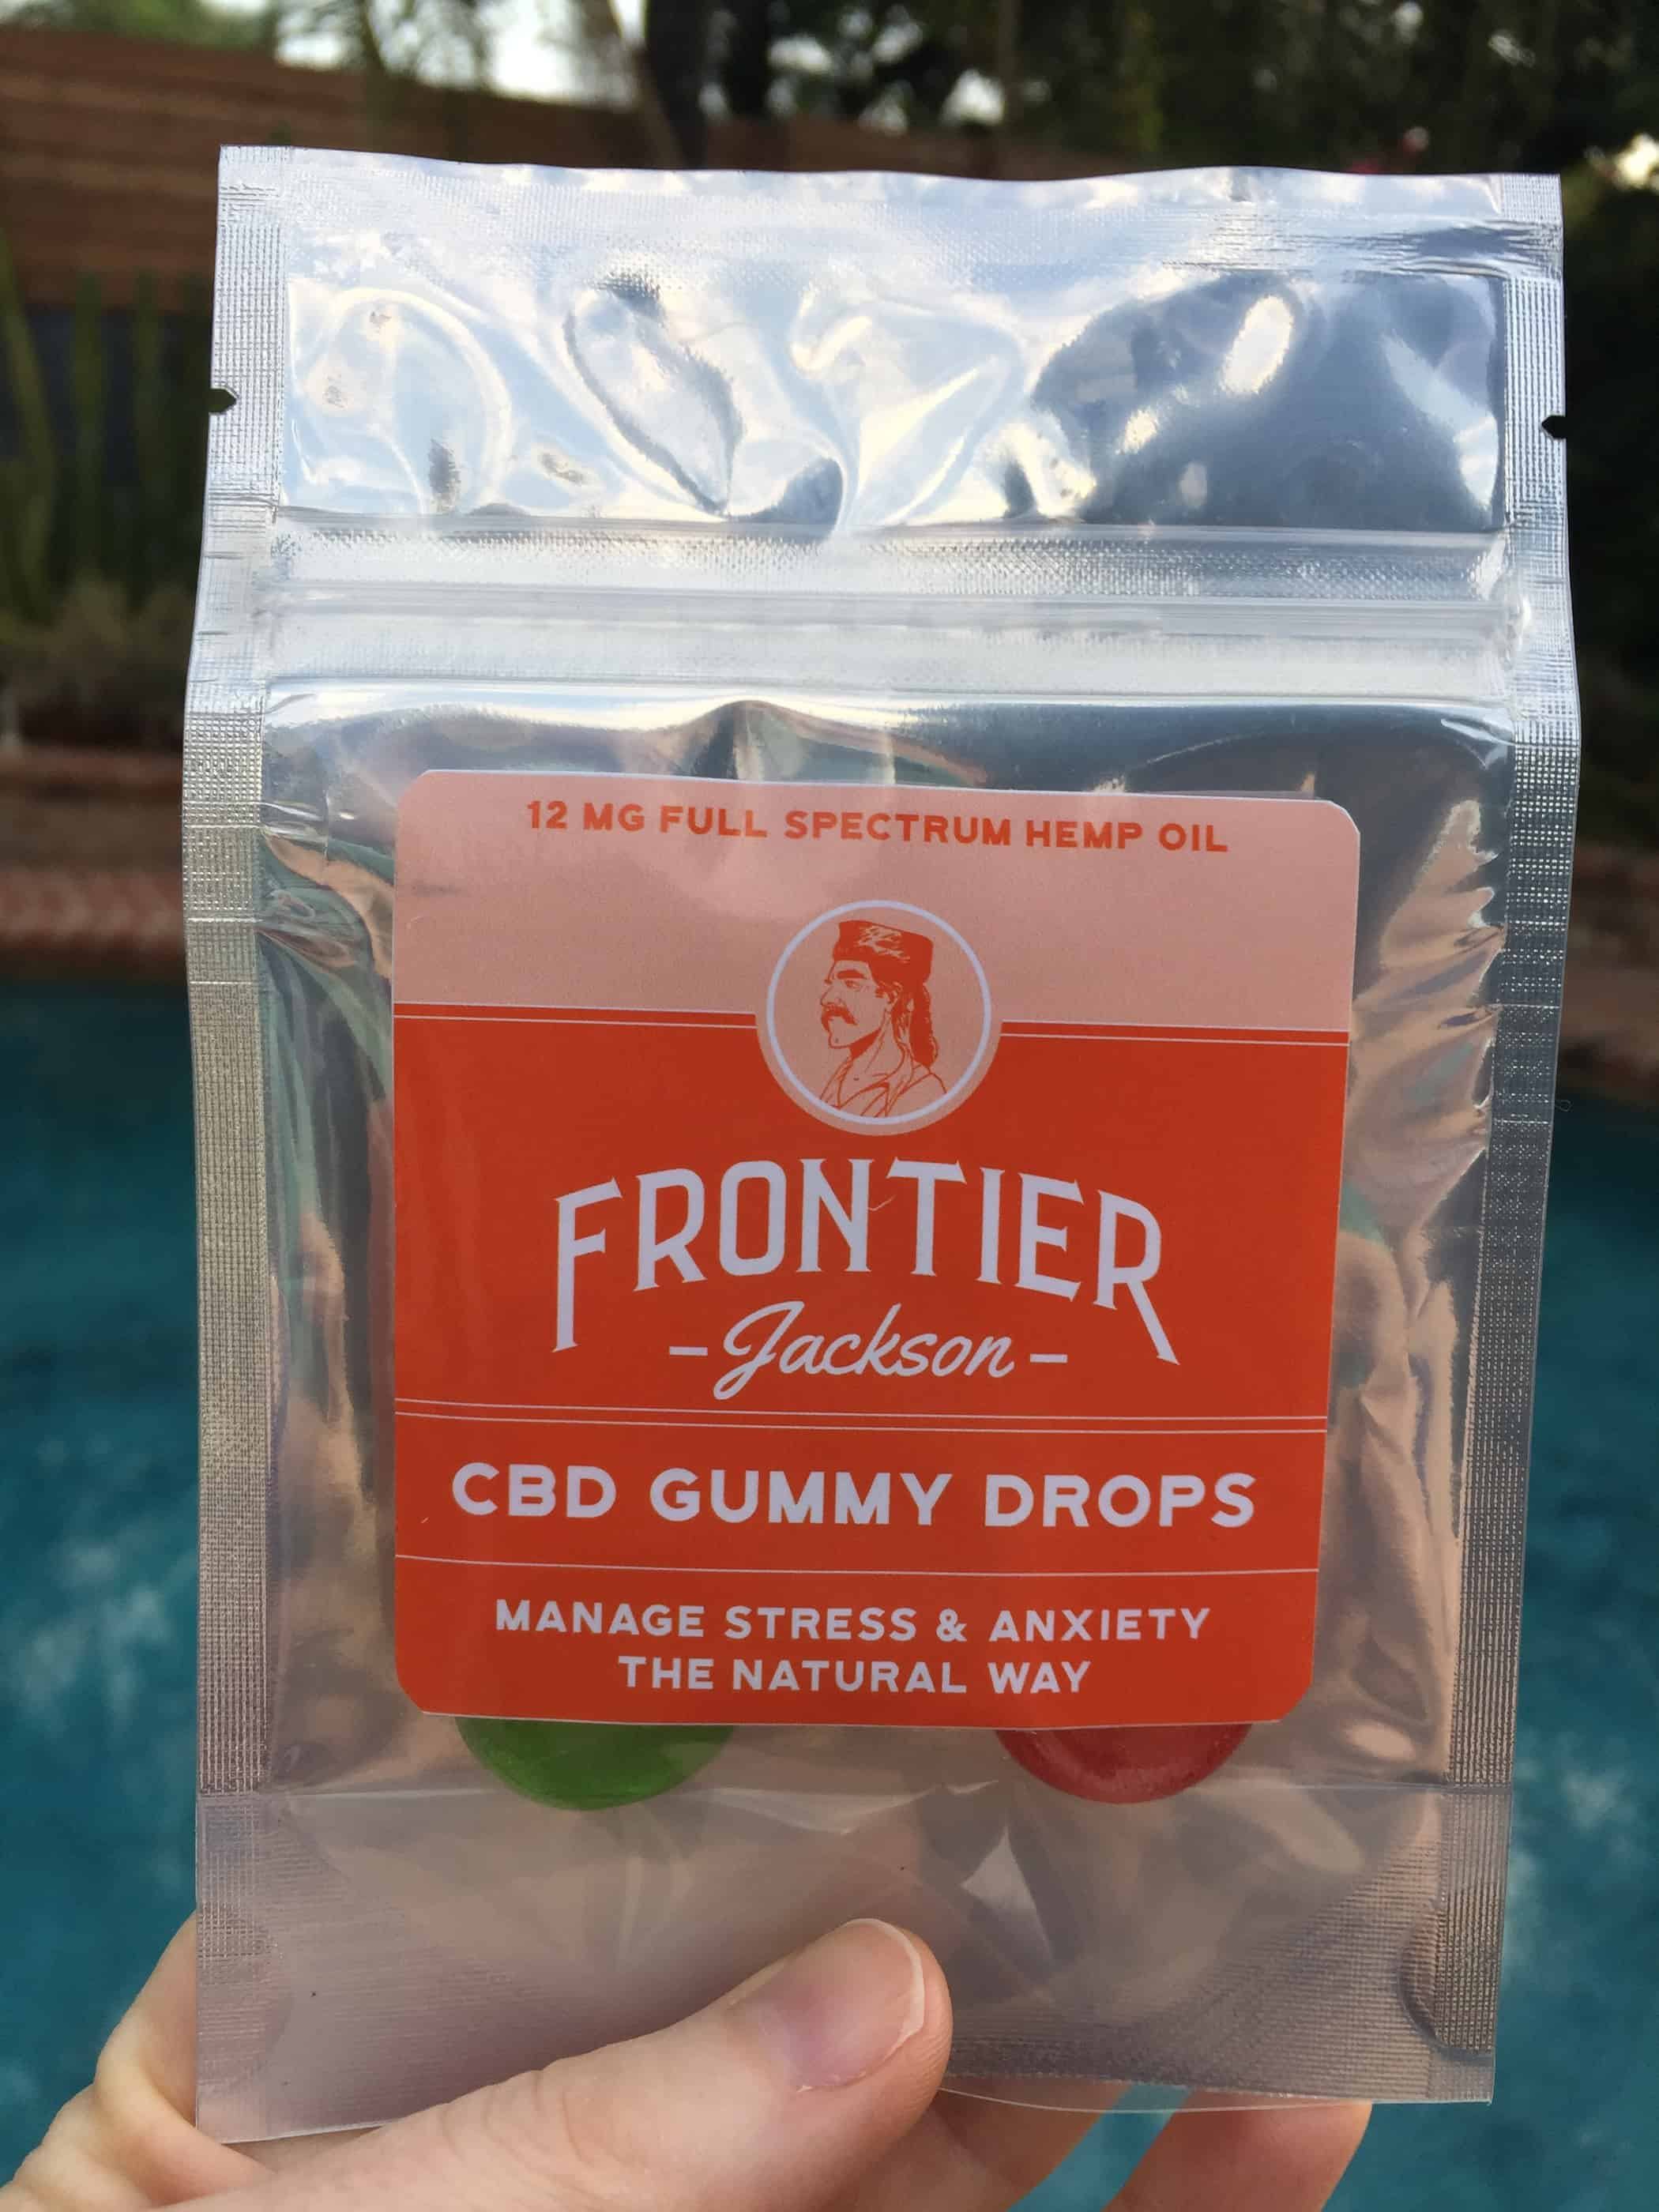 frontier jackson cbd gummy drops save on cannabis beauty shot